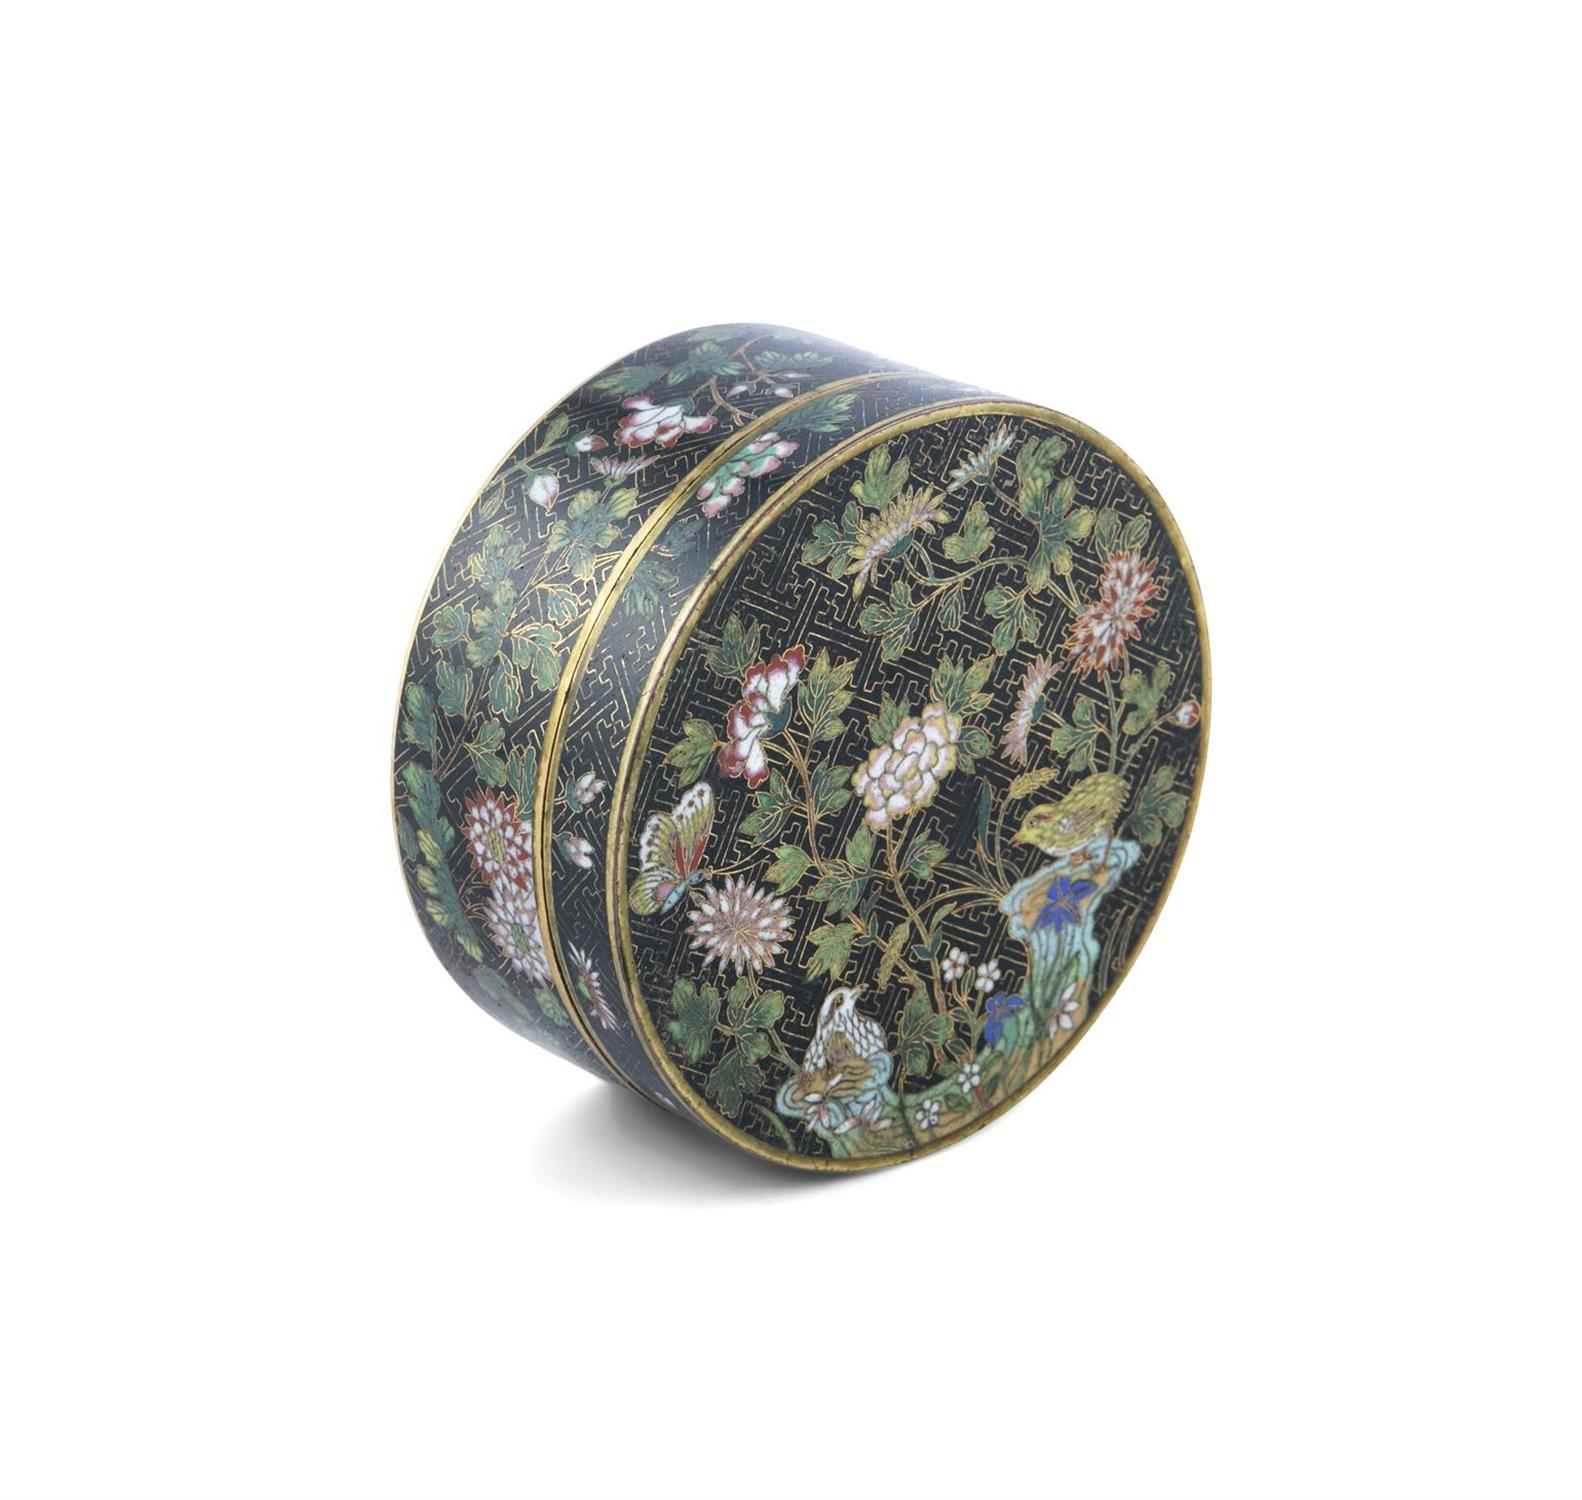 A 'FLOWER AND ROCKS' ROUND CLOISONNE BOX AND COVER China, Late Qing to Republican / Minguo period - Image 12 of 36